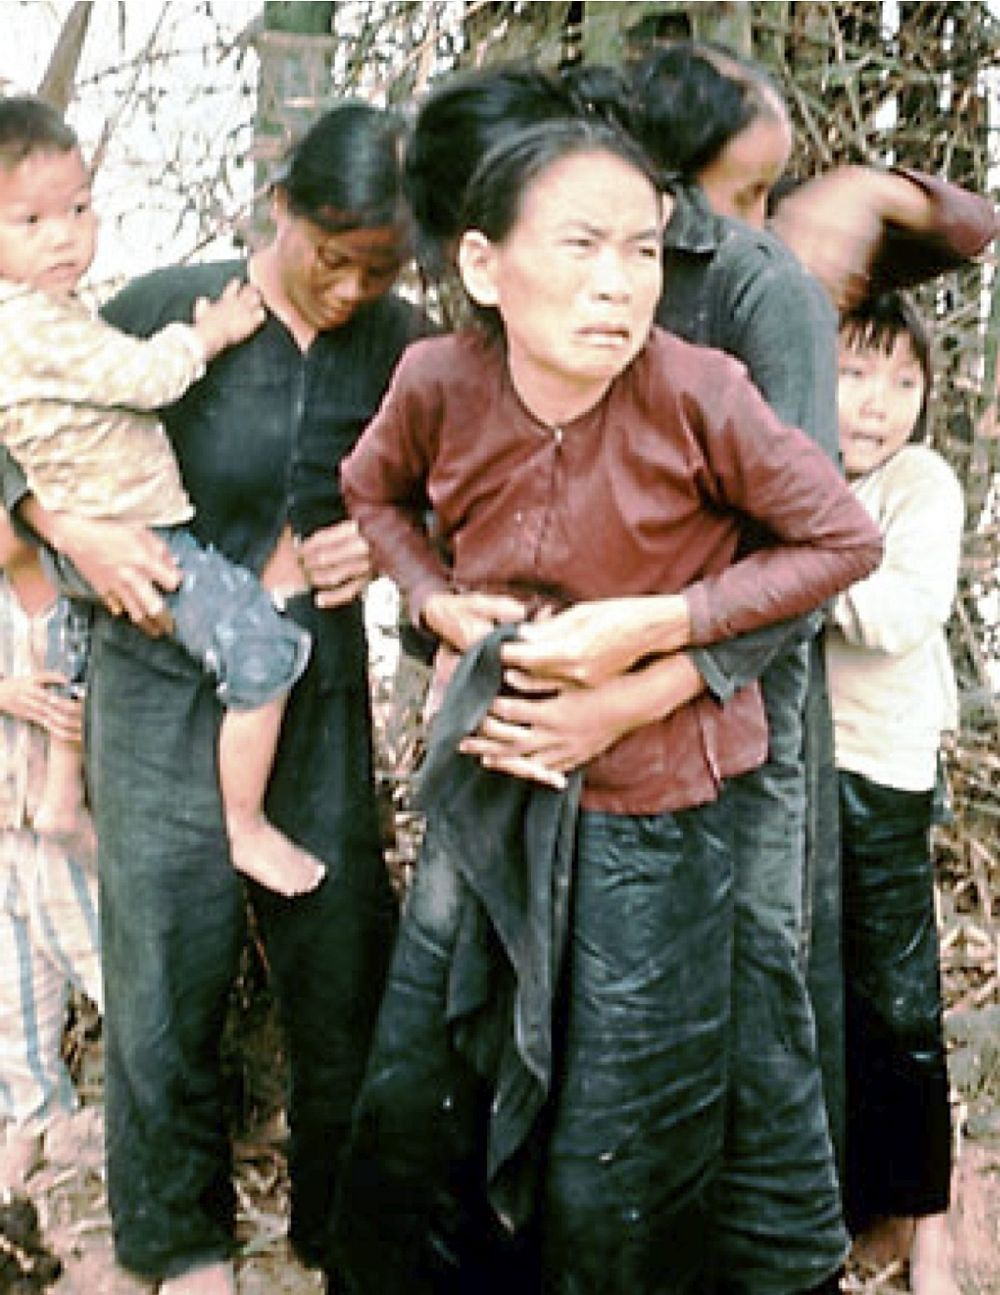 The Mỹ Lai Massacre- was the Vietnam War mass killing of between 347 and 504 unarmed civilians in South Vietnam on March 16, 1968. It was committed by U.S. Army soldiers. Victims included men, women, children, and infants. Some of the women were gang-raped and their bodies mutilated.Twenty-six soldiers were charged with criminal offenses, but only William Calley Jr., a platoon leader, was convicted. Found guilty of killing 22 villagers, he was originally given a life sentence...